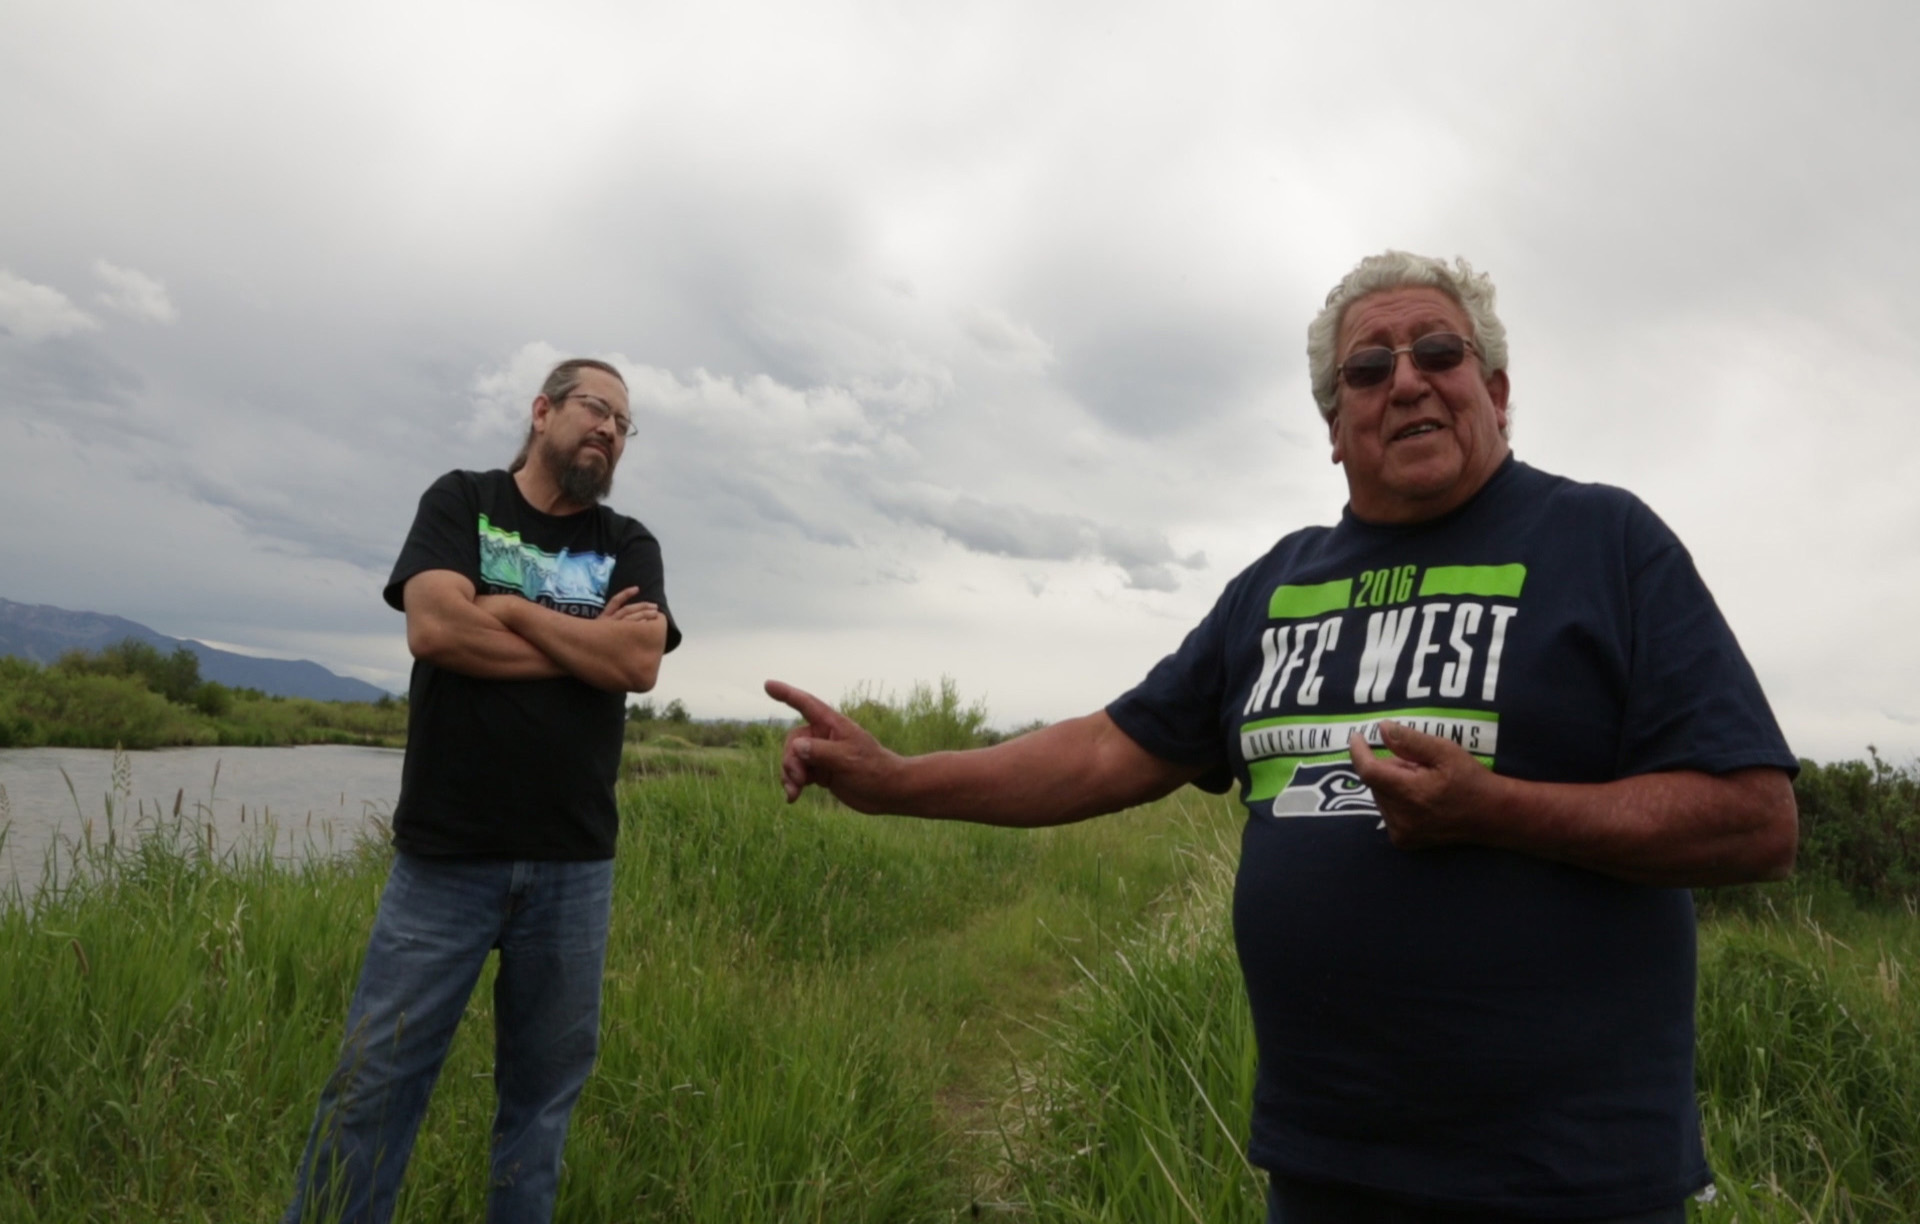 Northern Cheyenne artist Bently Spang (left) and Northern Cheyenne ethnobotanist Linwood Tall Bull (right) discuss the wetlands.